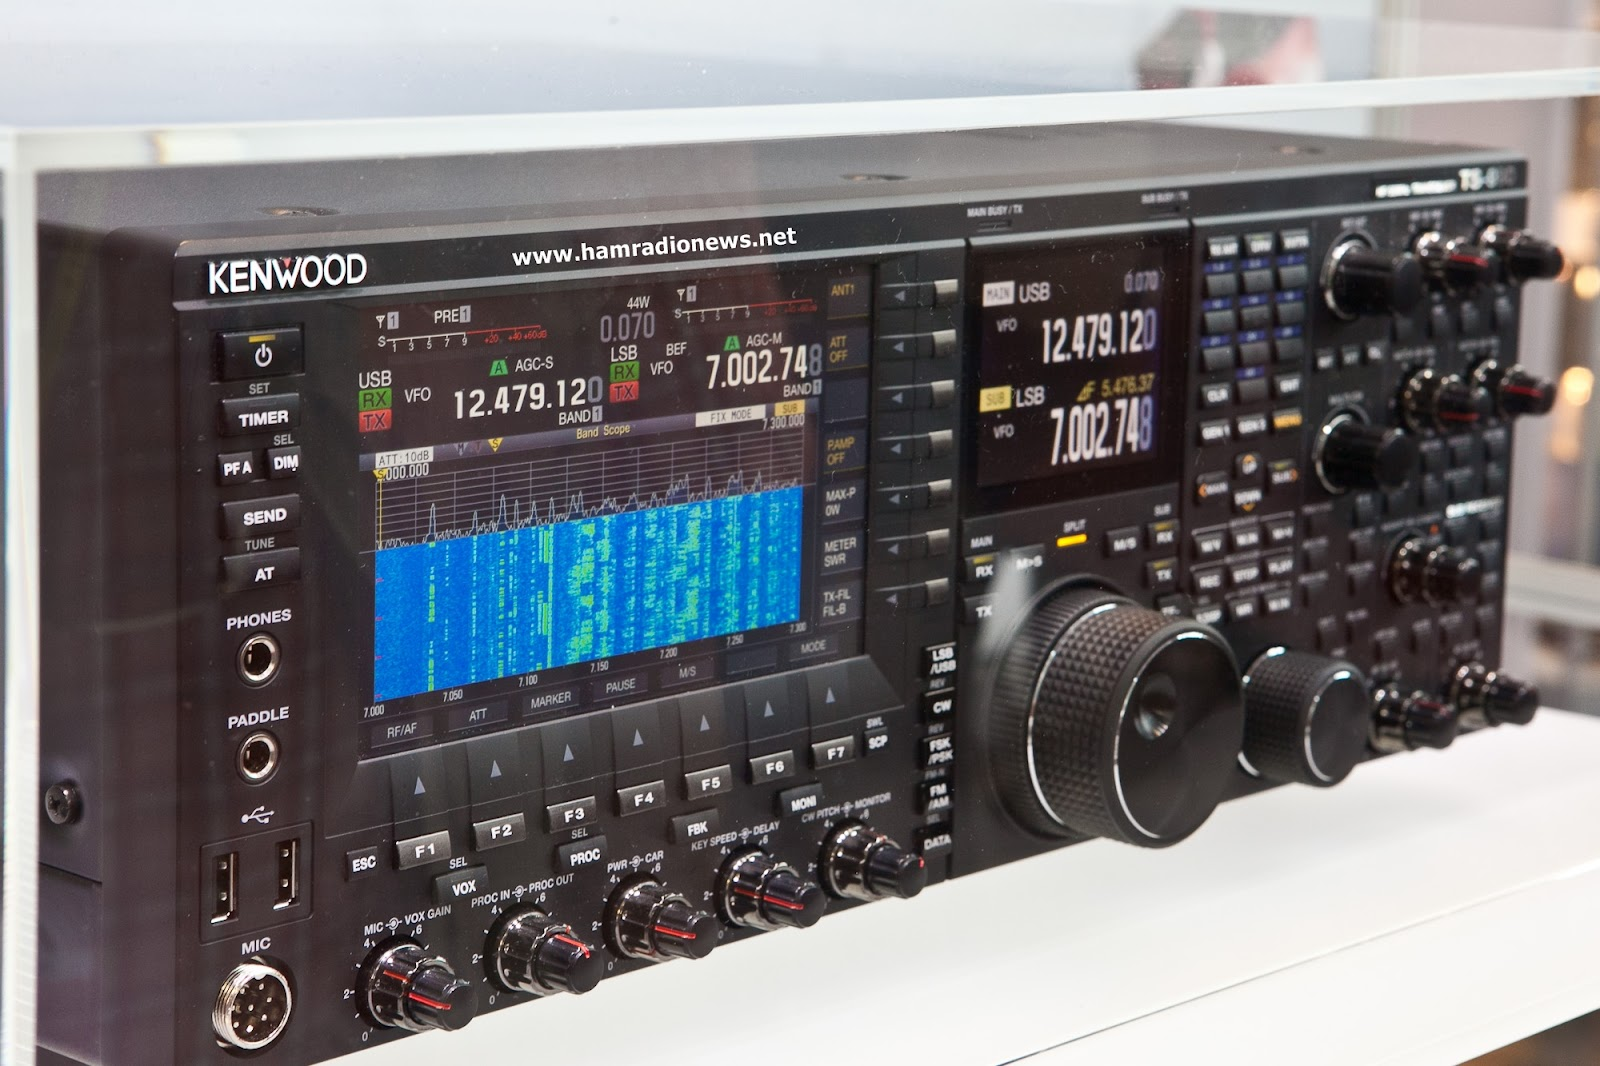 Kenwood Amateur Radios 83